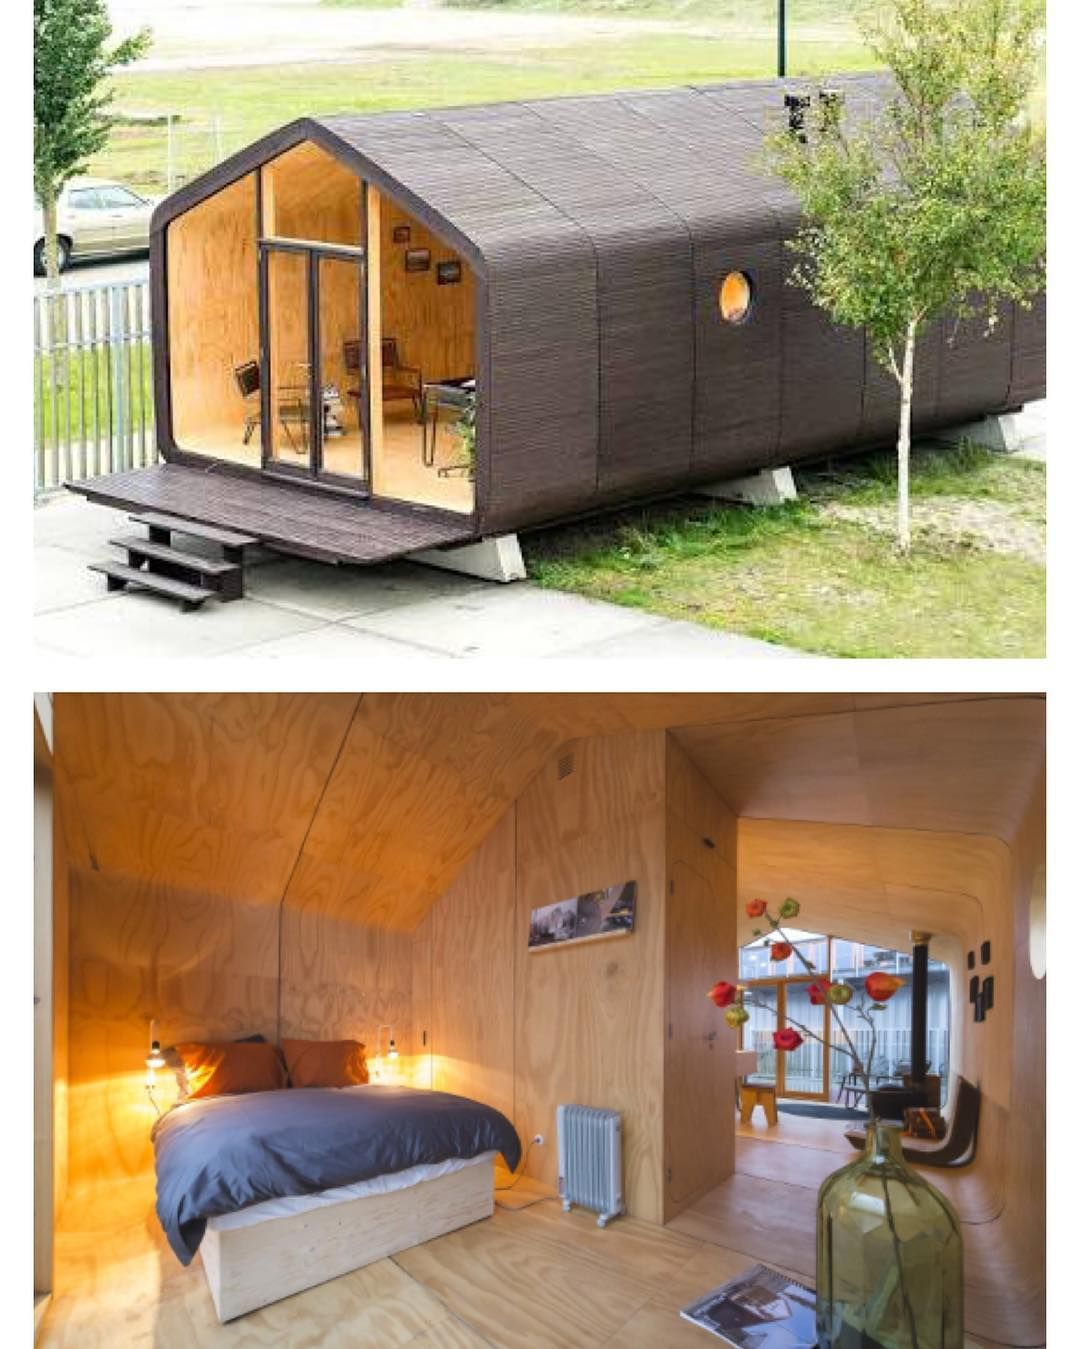 a special little house made out of cardboard sustainably built